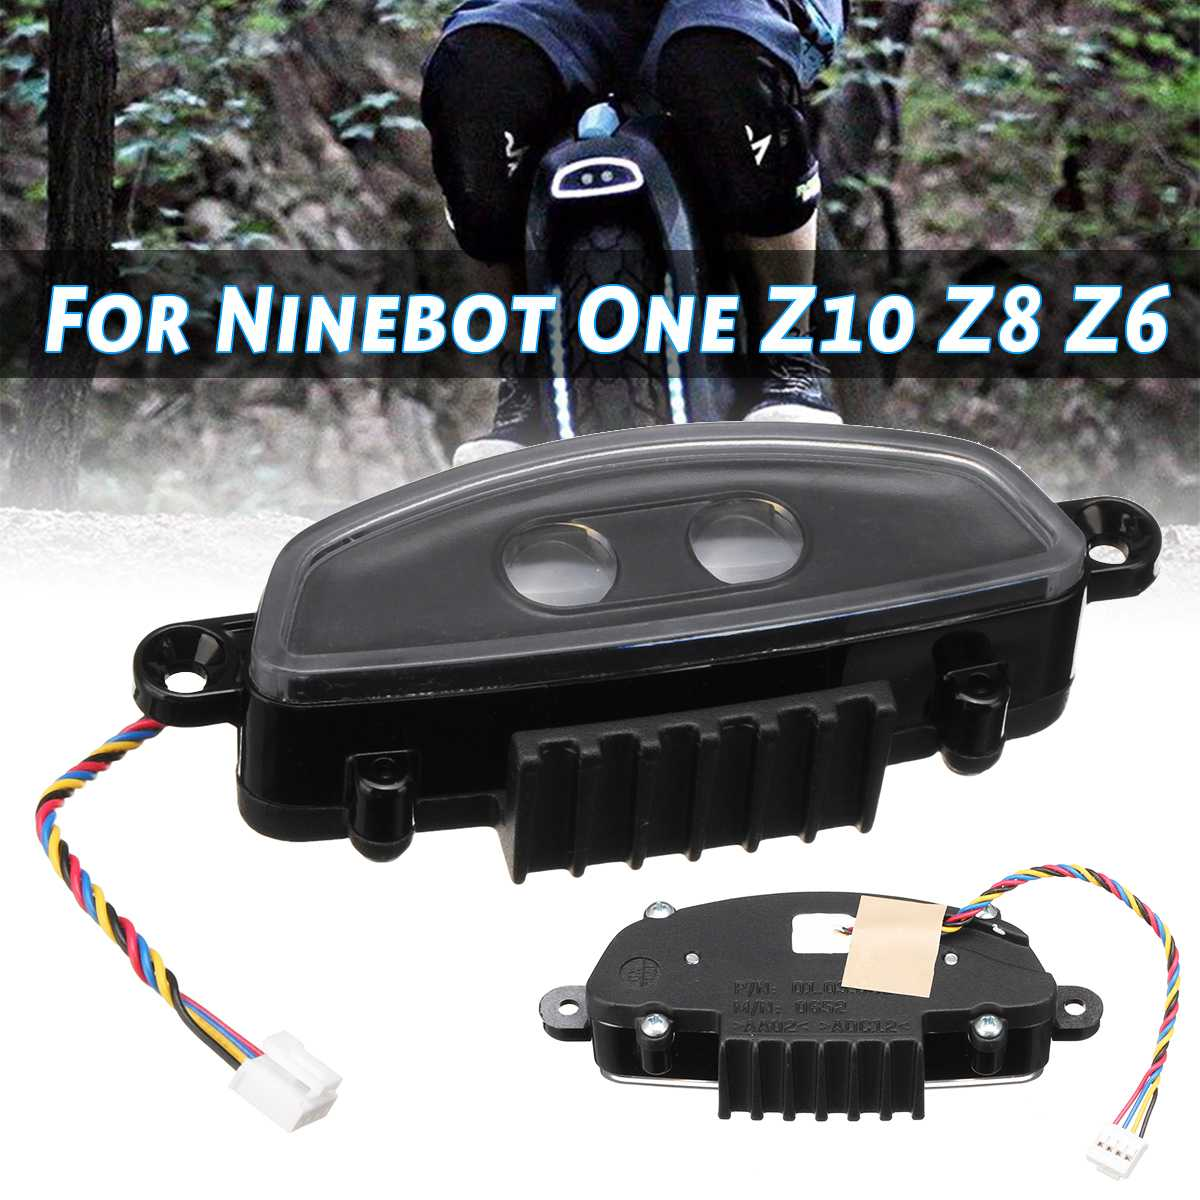 NEW Z10 Front Light Original for Ninebot Z10 Front Light Rear Light Spare Parts For Ninebot One Z10 Z8 Z6 Electric Unicycle